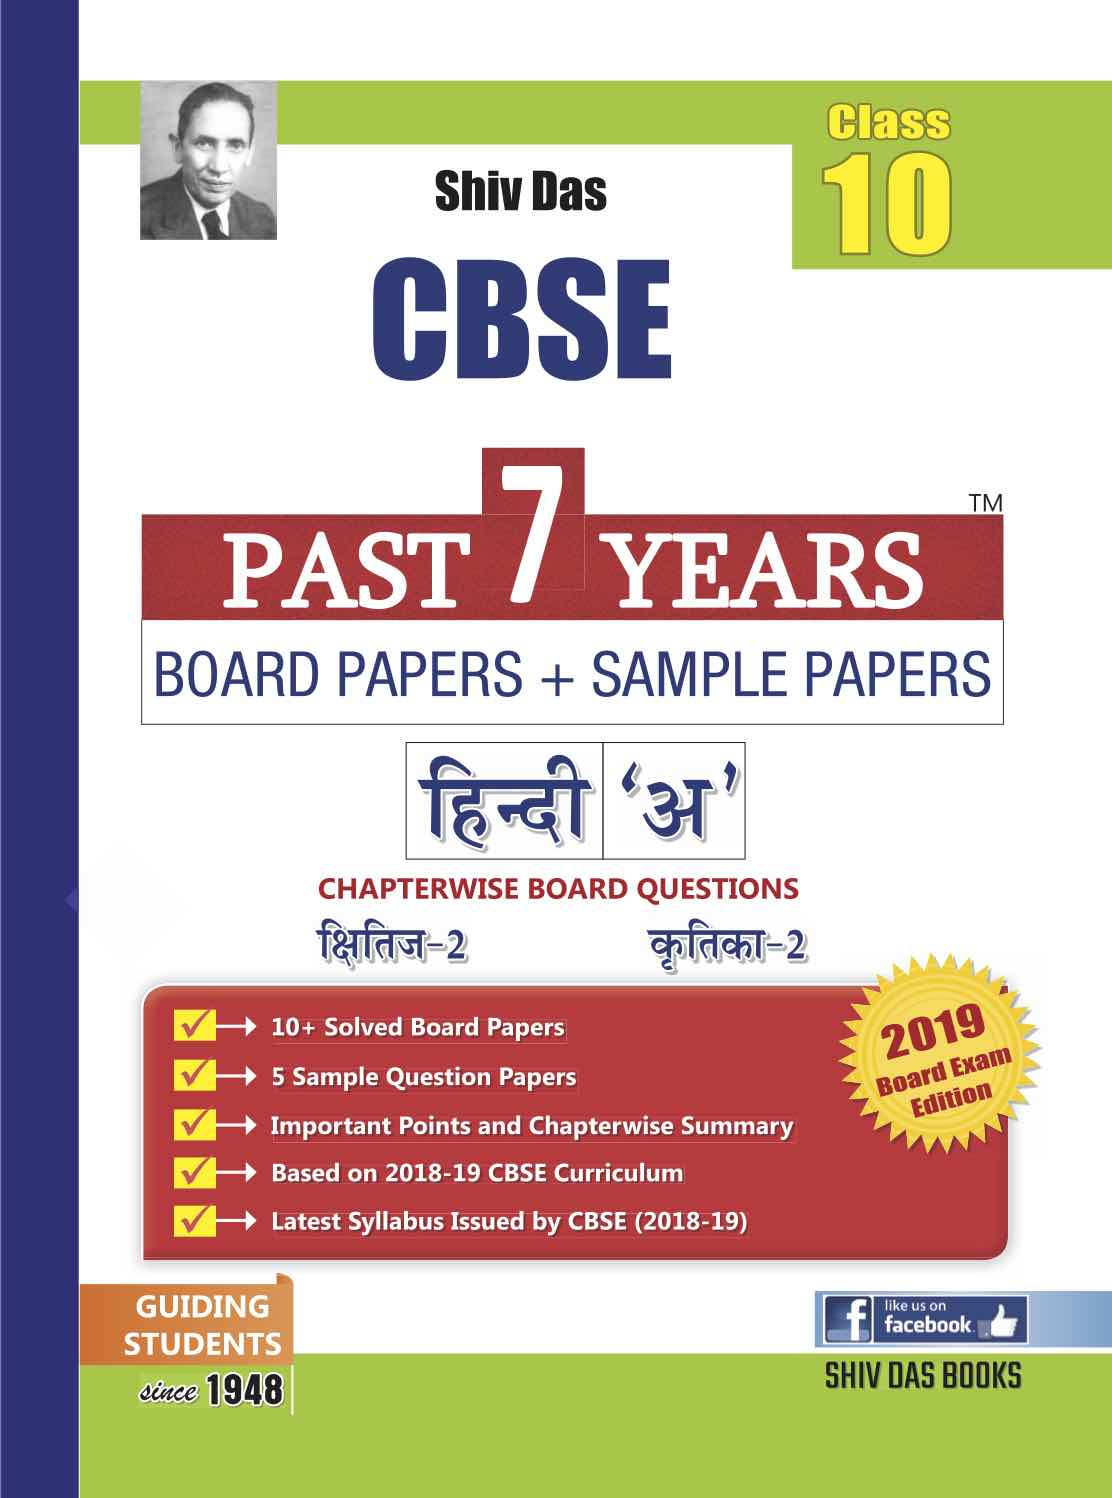 CBSE Past 7 Years Solved Board Papers+Sample Papers for Class 10 Hindi-A (2019 Board Exam Edition)